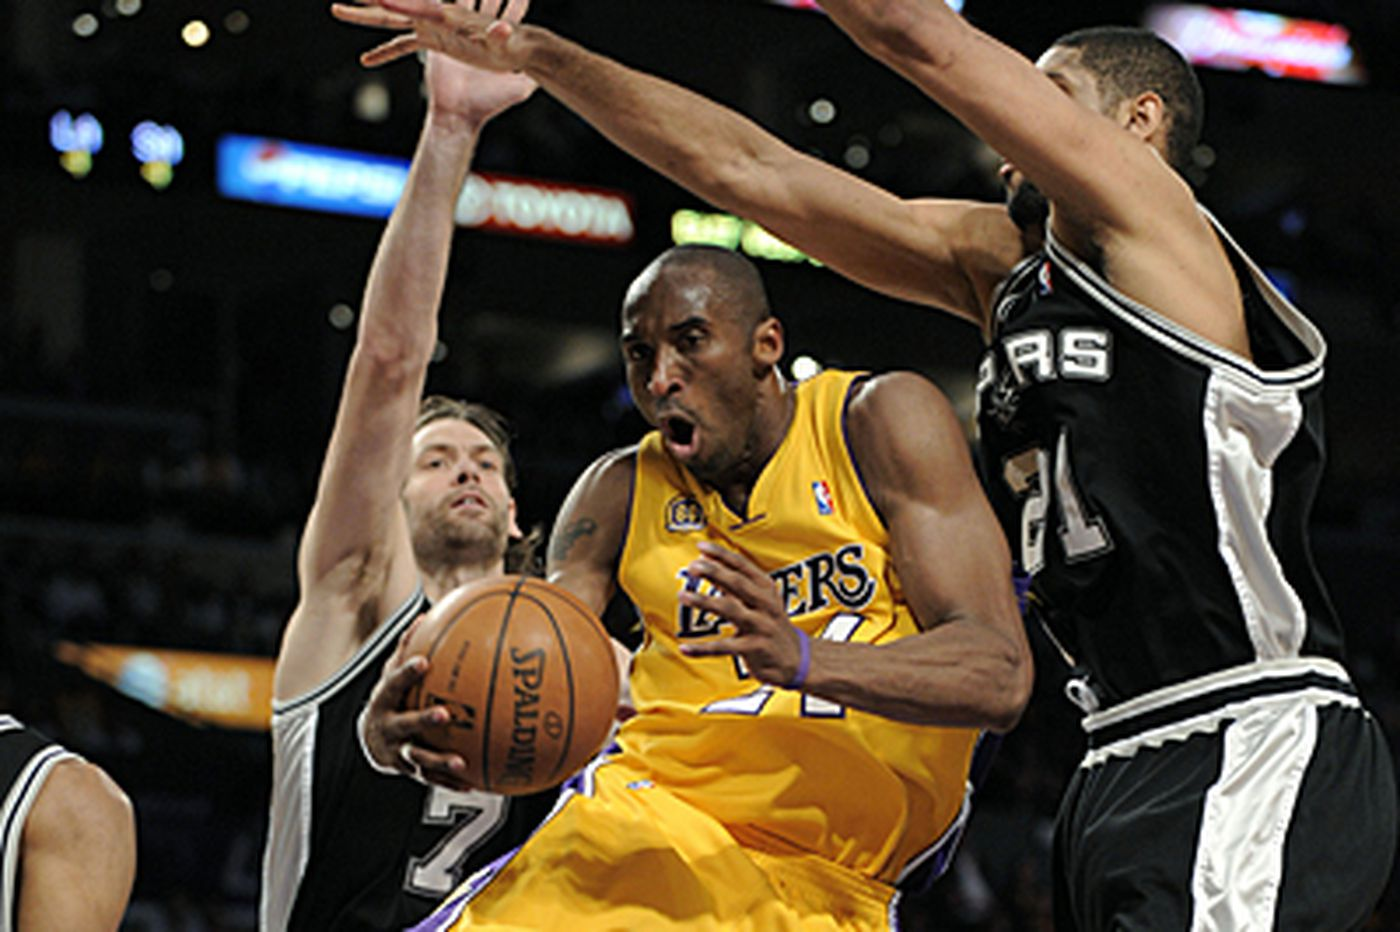 NBA: Bryant and Lakers breeze past Spurs